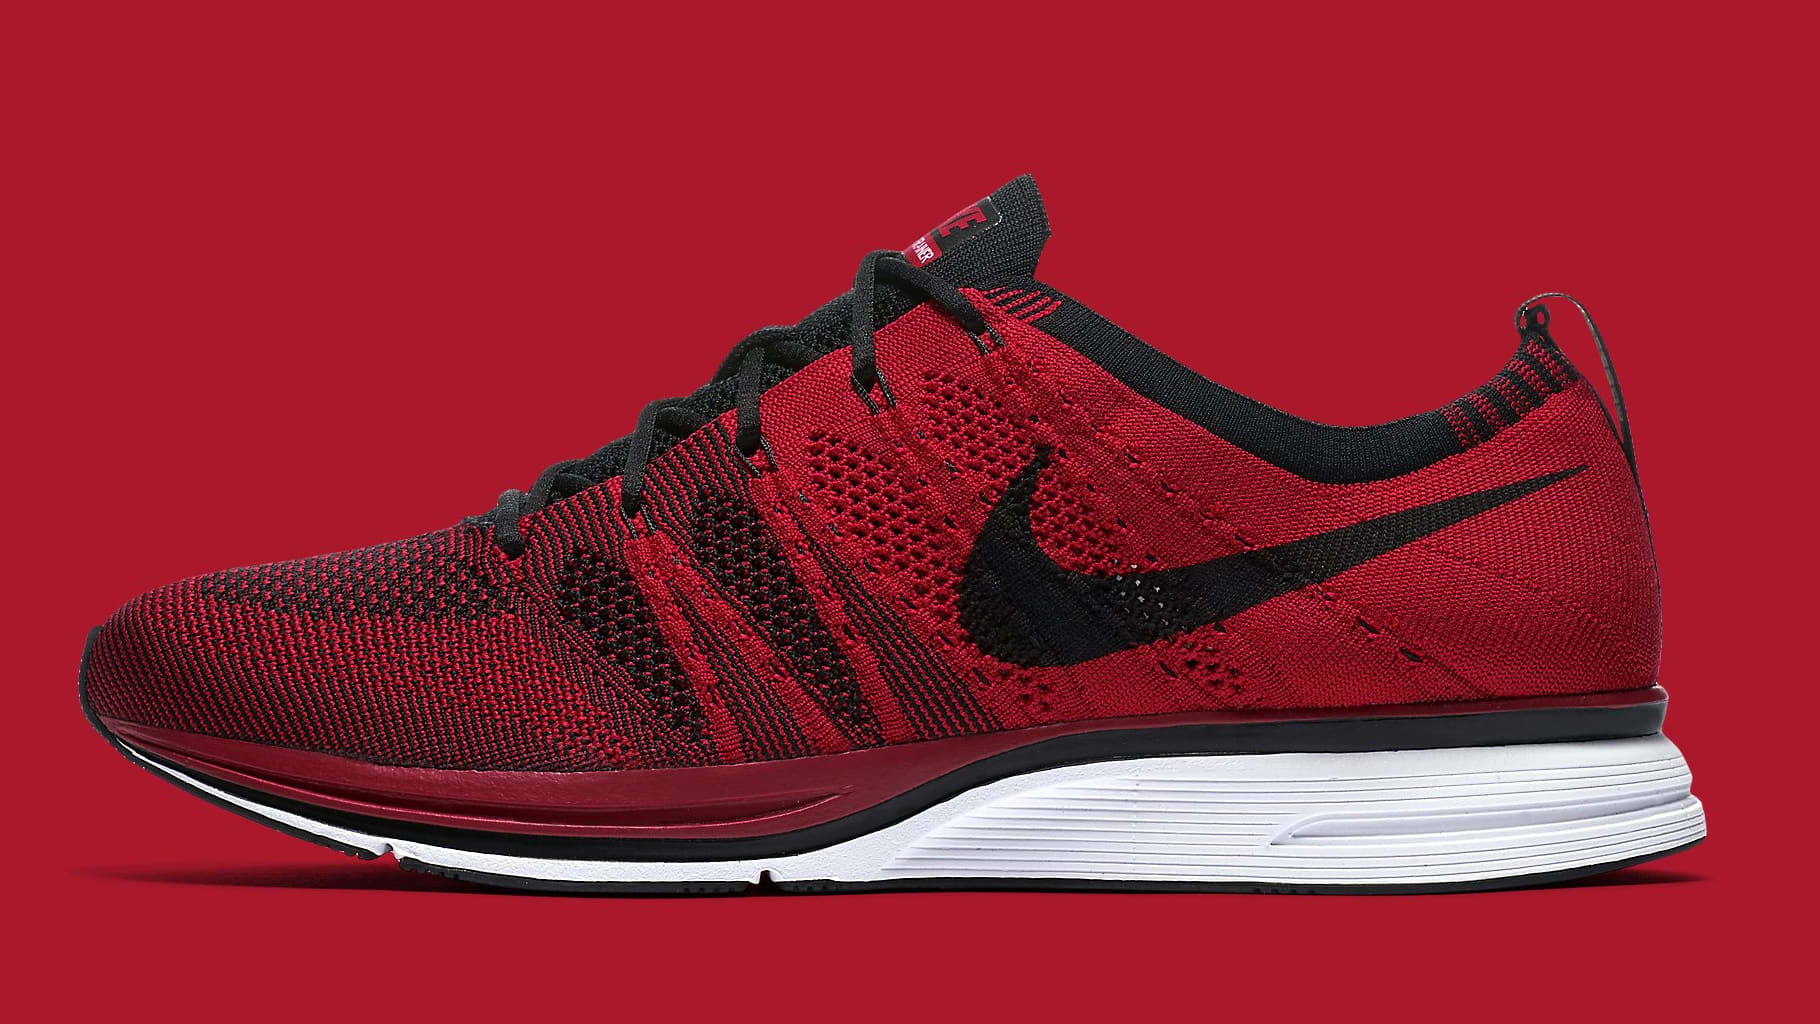 2a80fd7ec03f1 ... reduced nike flyknit trainer university red ah8396 601 profile 448b9  00f4b